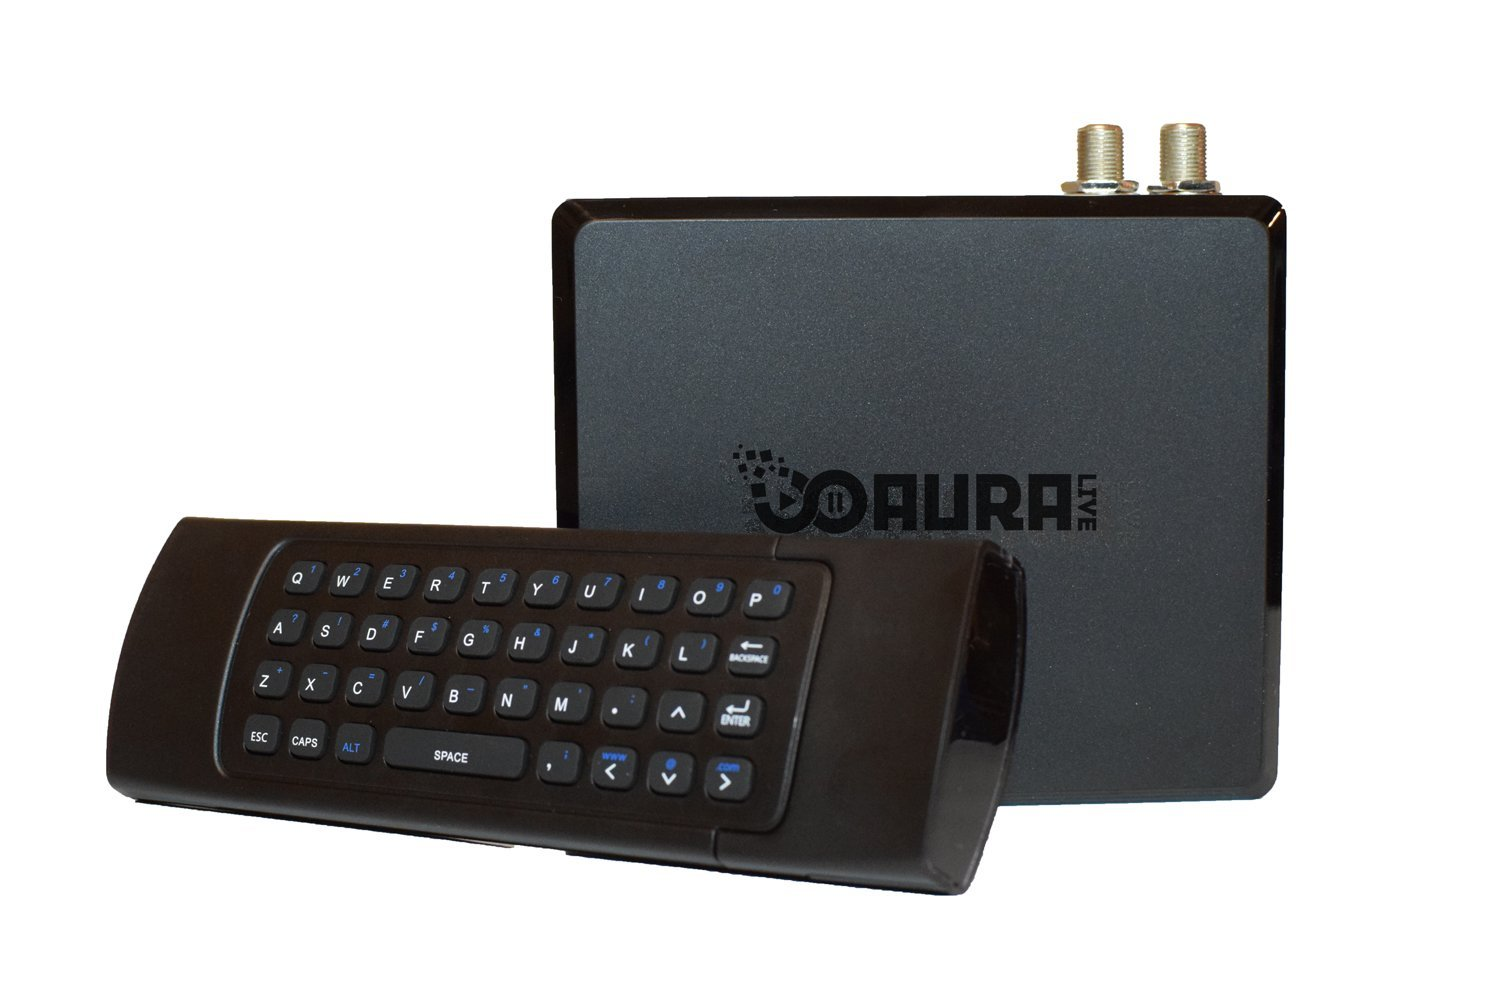 Android TV Box Watch Any Movie, TV Show, and Local Live TV with DVR includes QWERTY Remote, Antenna, and Digital TV Tuner